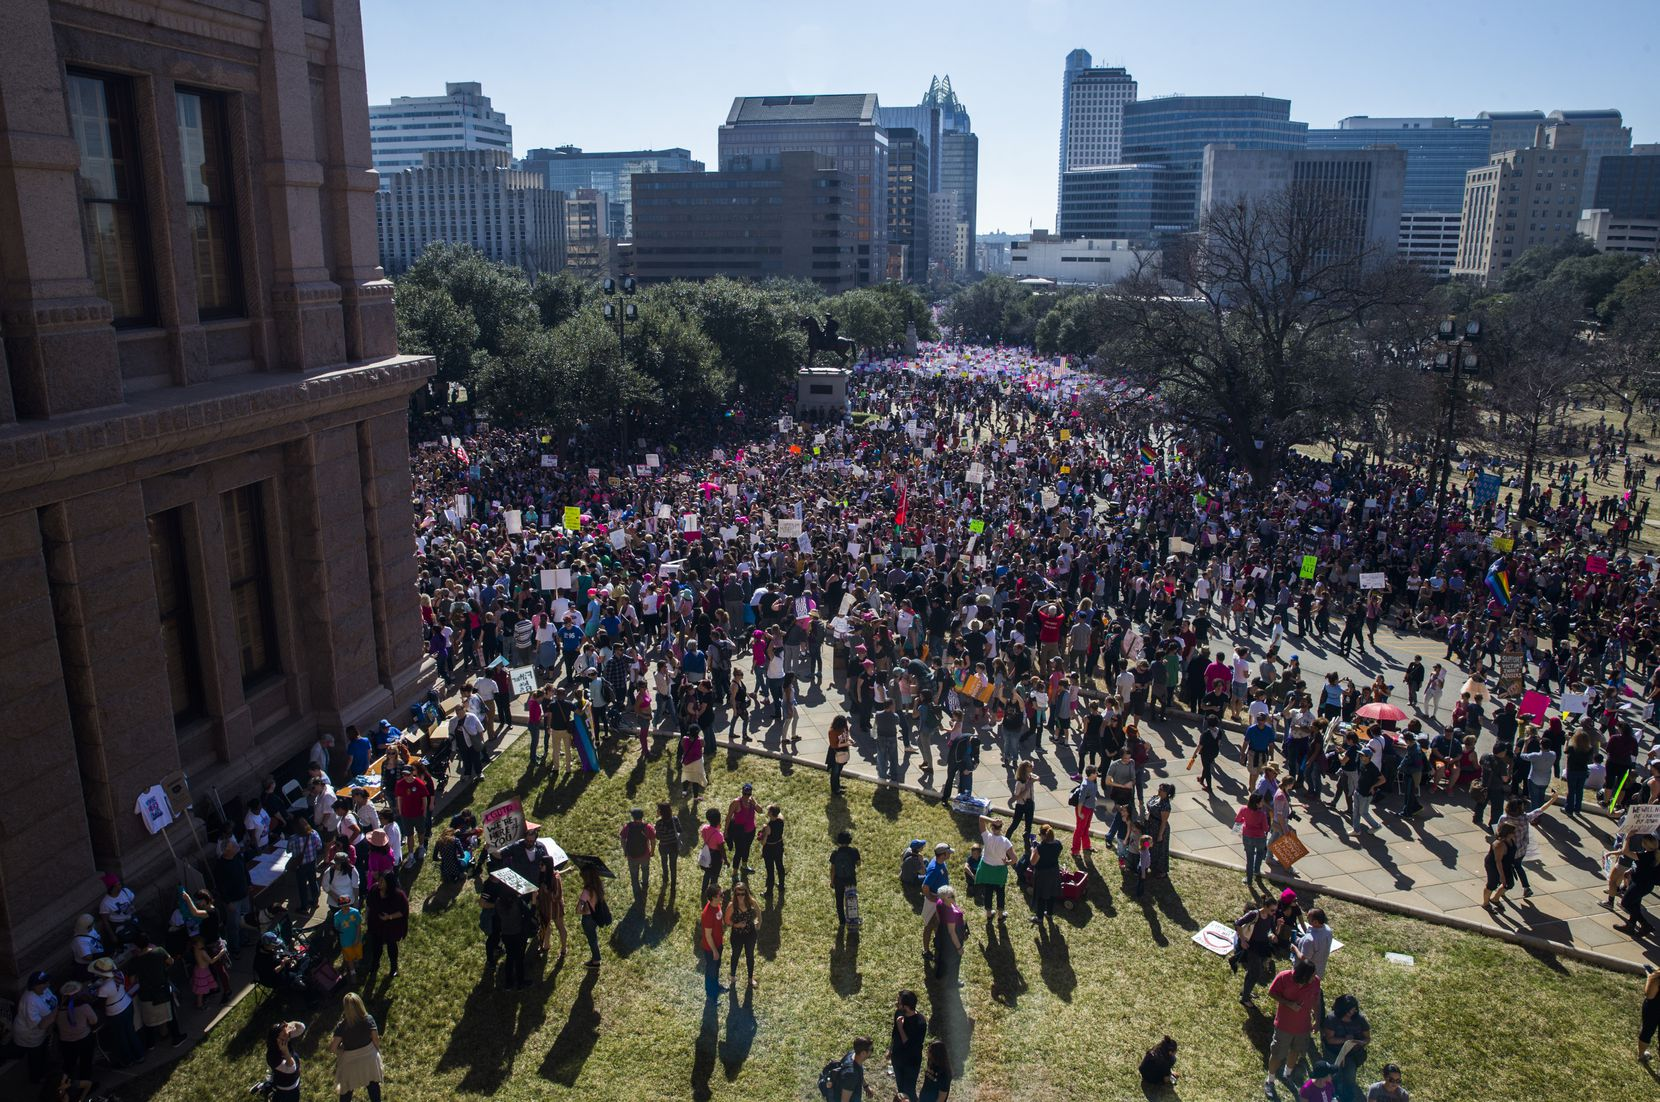 Thousands of demonstrators gather at the Texas state Capitol during the Austin Women's March on Saturday. The event was held in solidarity with the Women's March on Washington.